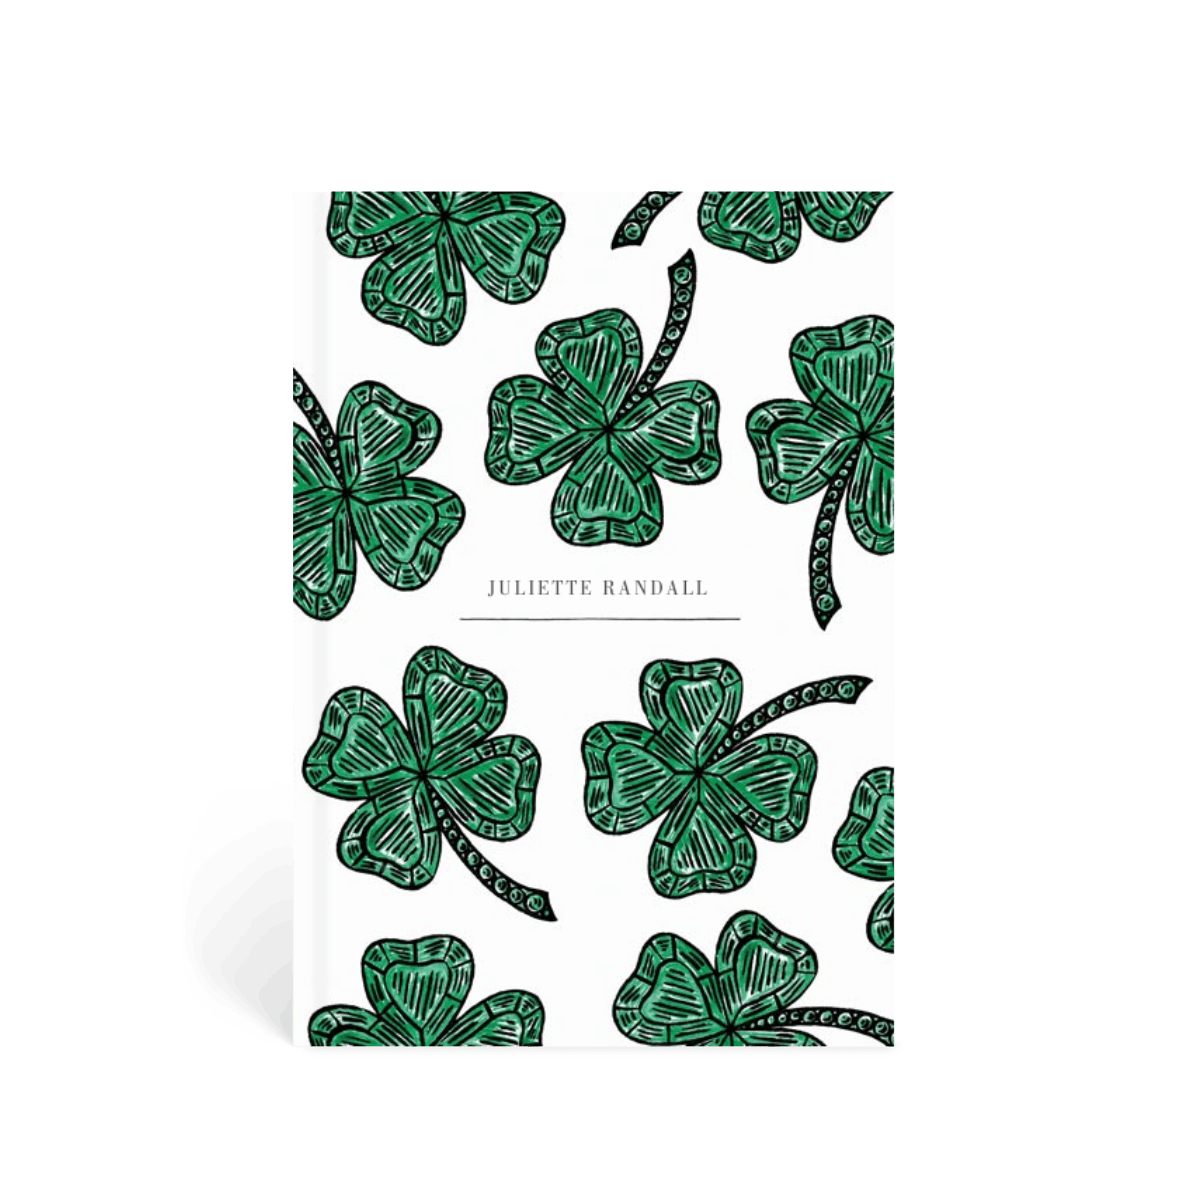 Https%3a%2f%2fwww.papier.com%2fproduct image%2f67984%2f25%2fshamrock 16074 front 1570301712.png?ixlib=rb 1.1